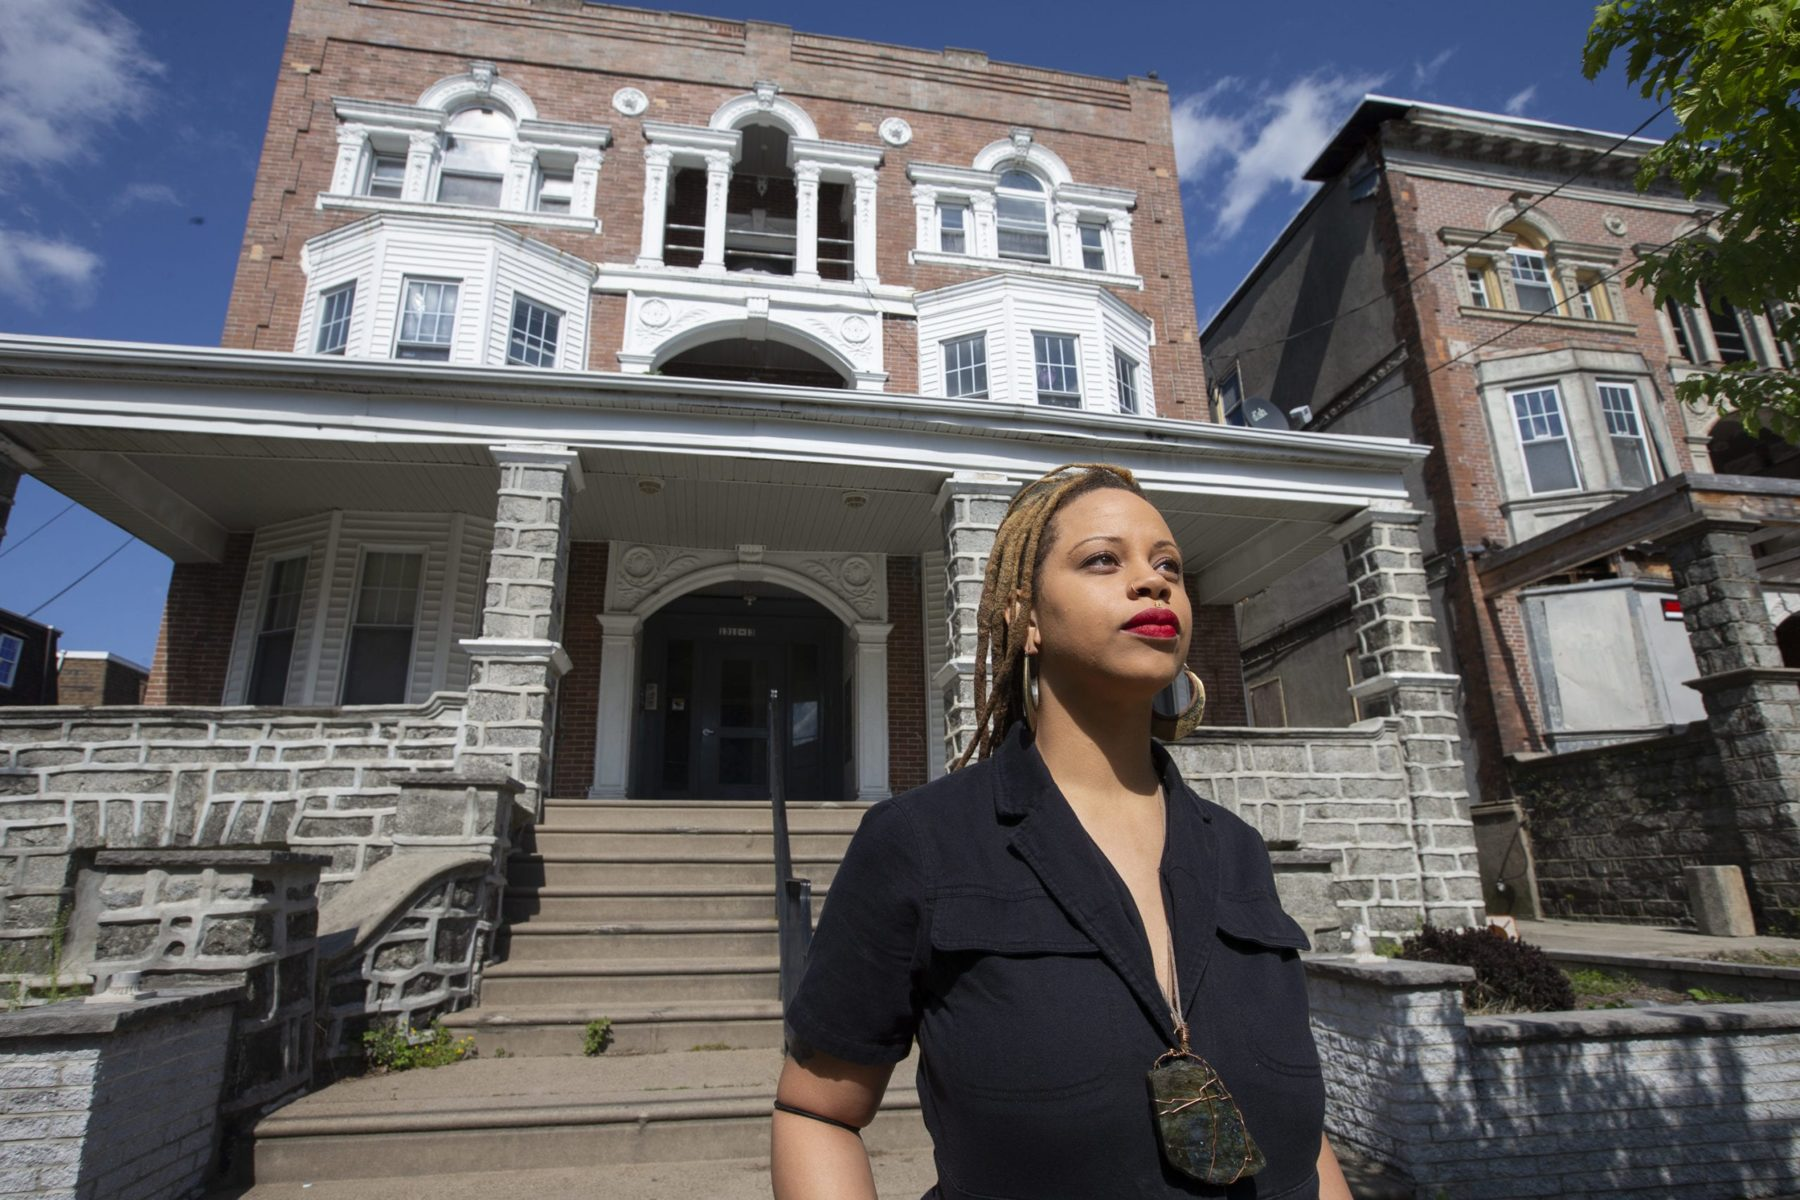 Shani Akilah of The Black and Brown Workers' Collective organized her fellow tenants to ensure that their landlord did not kick them or their neighbors out of their six-unit apartment building in southwest Philadelphia. She is shown in front of the building on April 15, 2020.